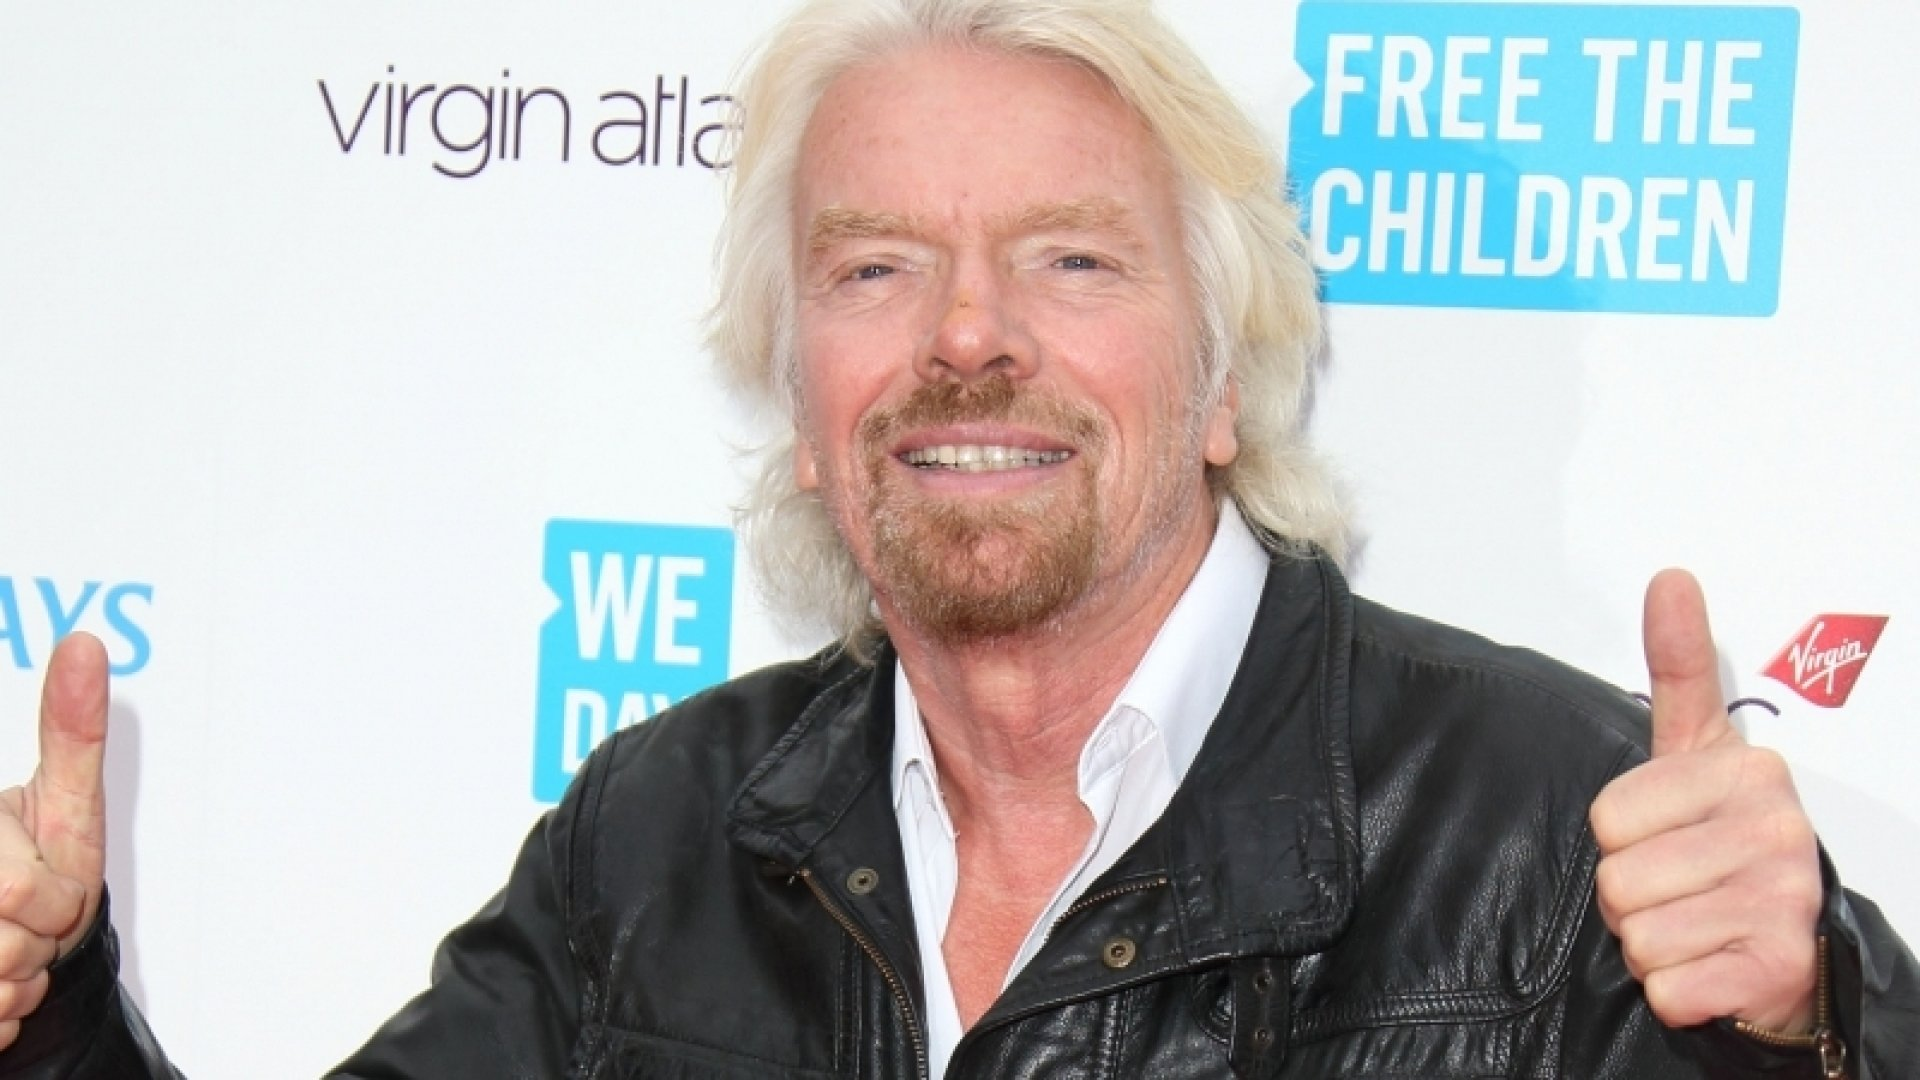 4 Insights From Richard Branson About Discovering What Matters Most